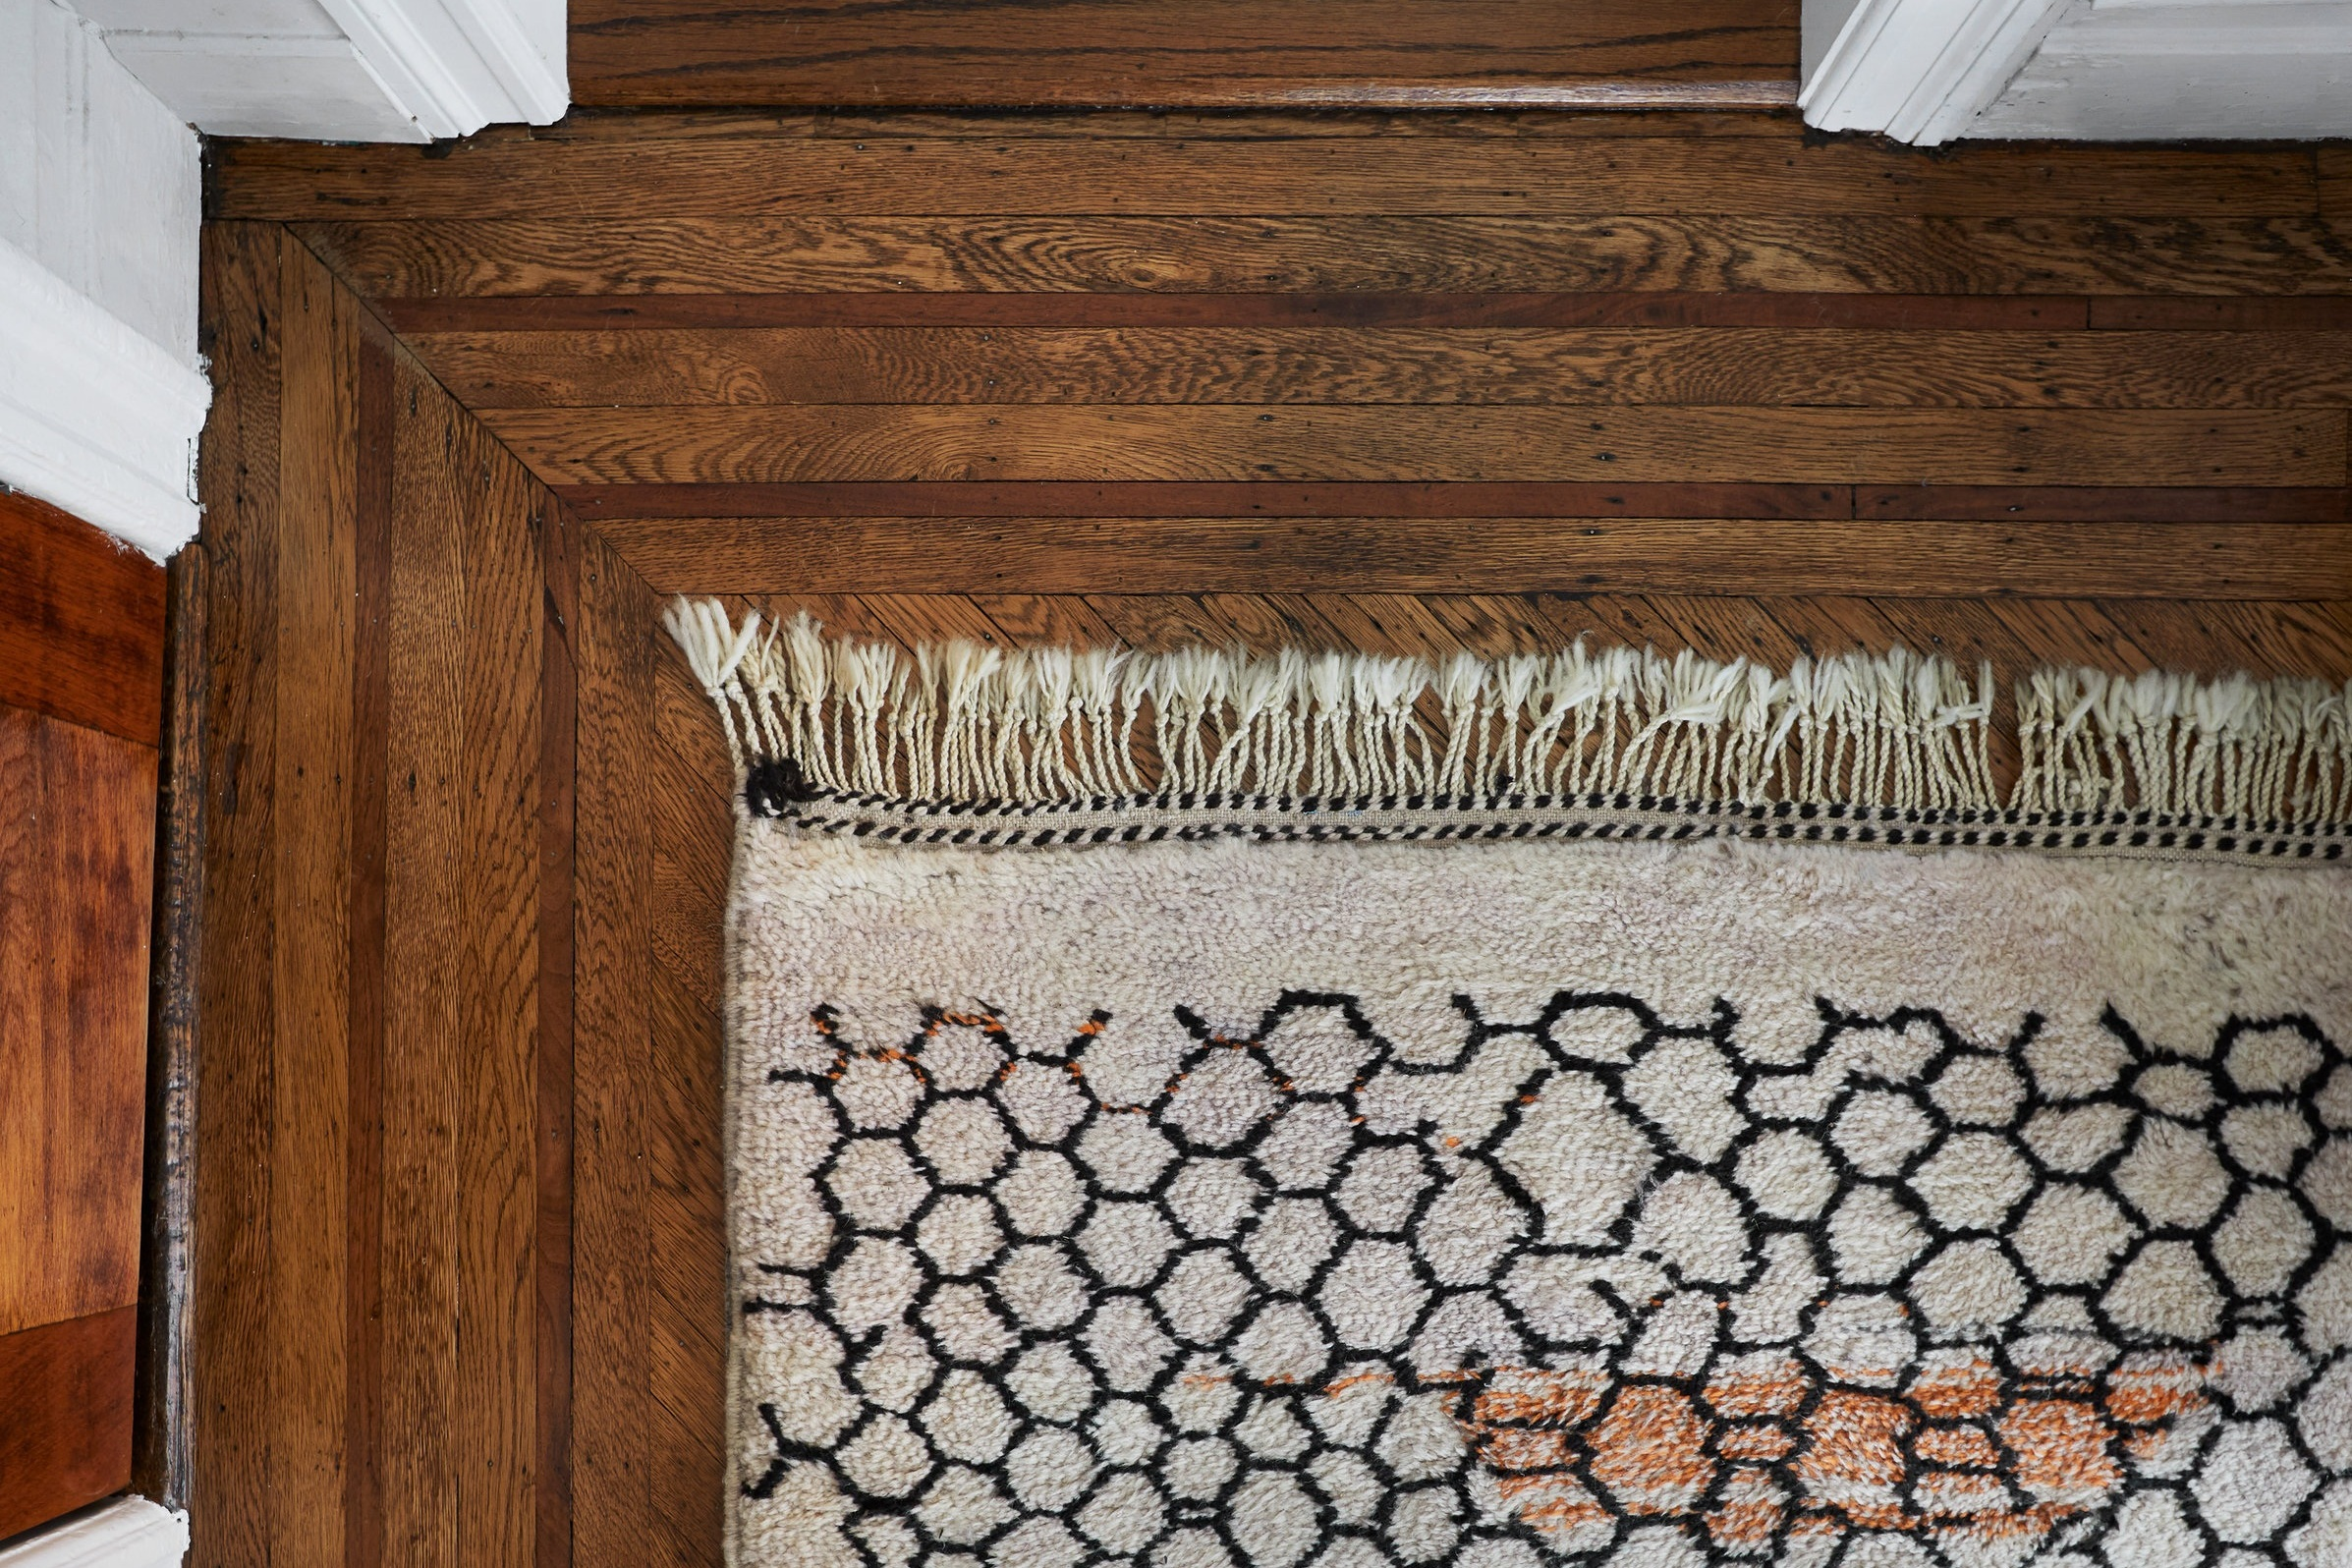 104-prospect-manor-rug-hardwood-detail.jpg